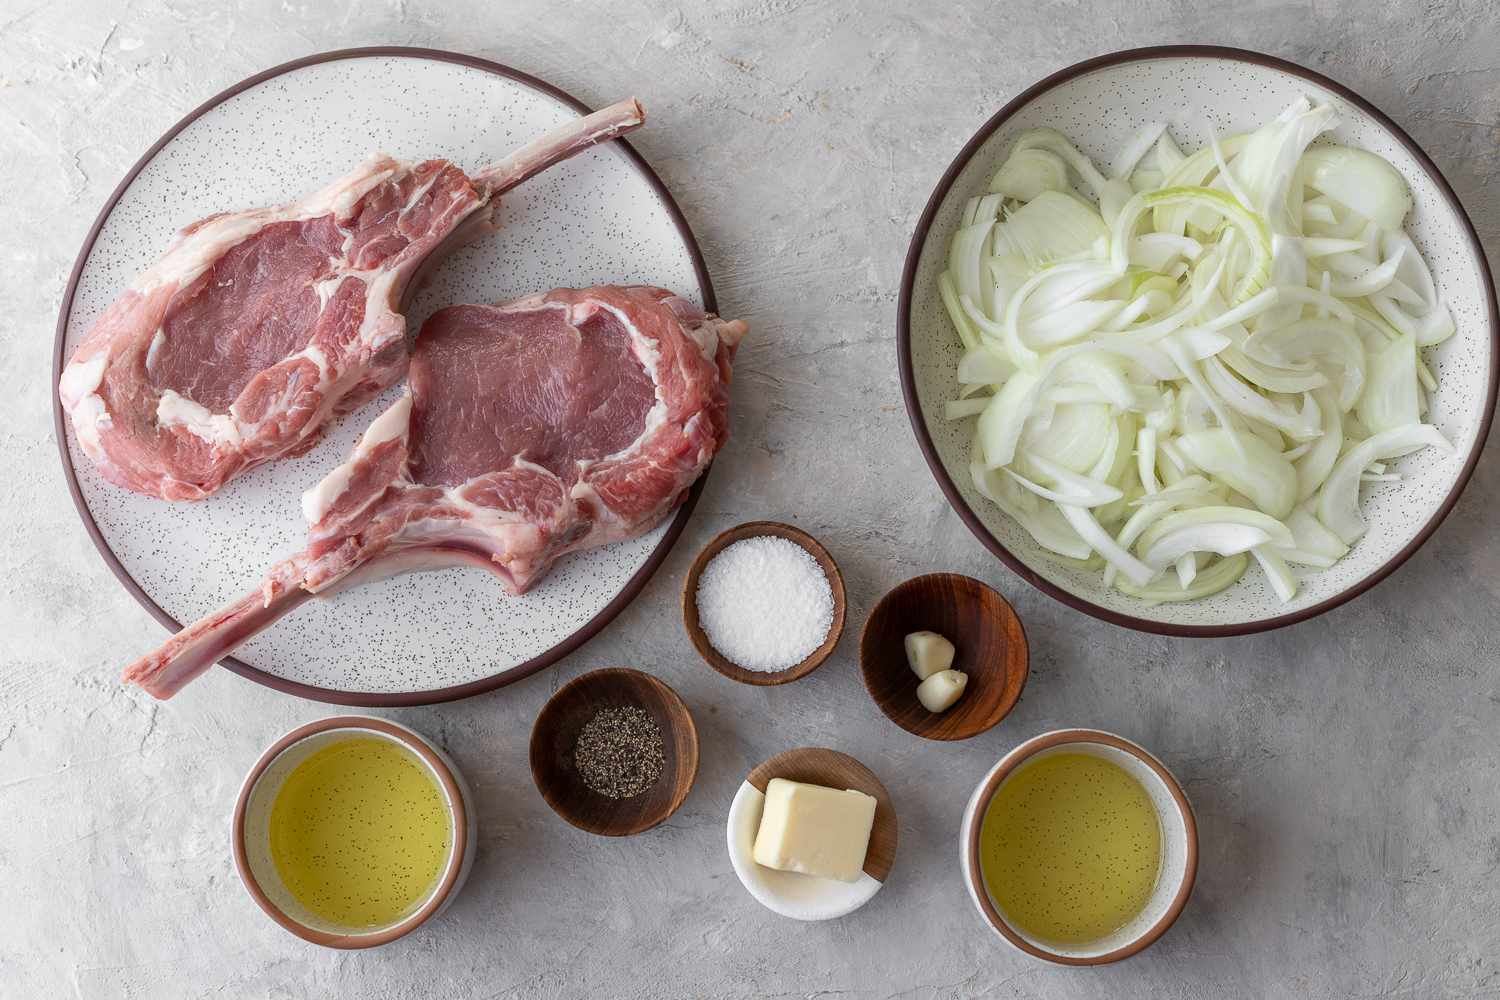 Veal Steaks With Caramelized Onions ingredients